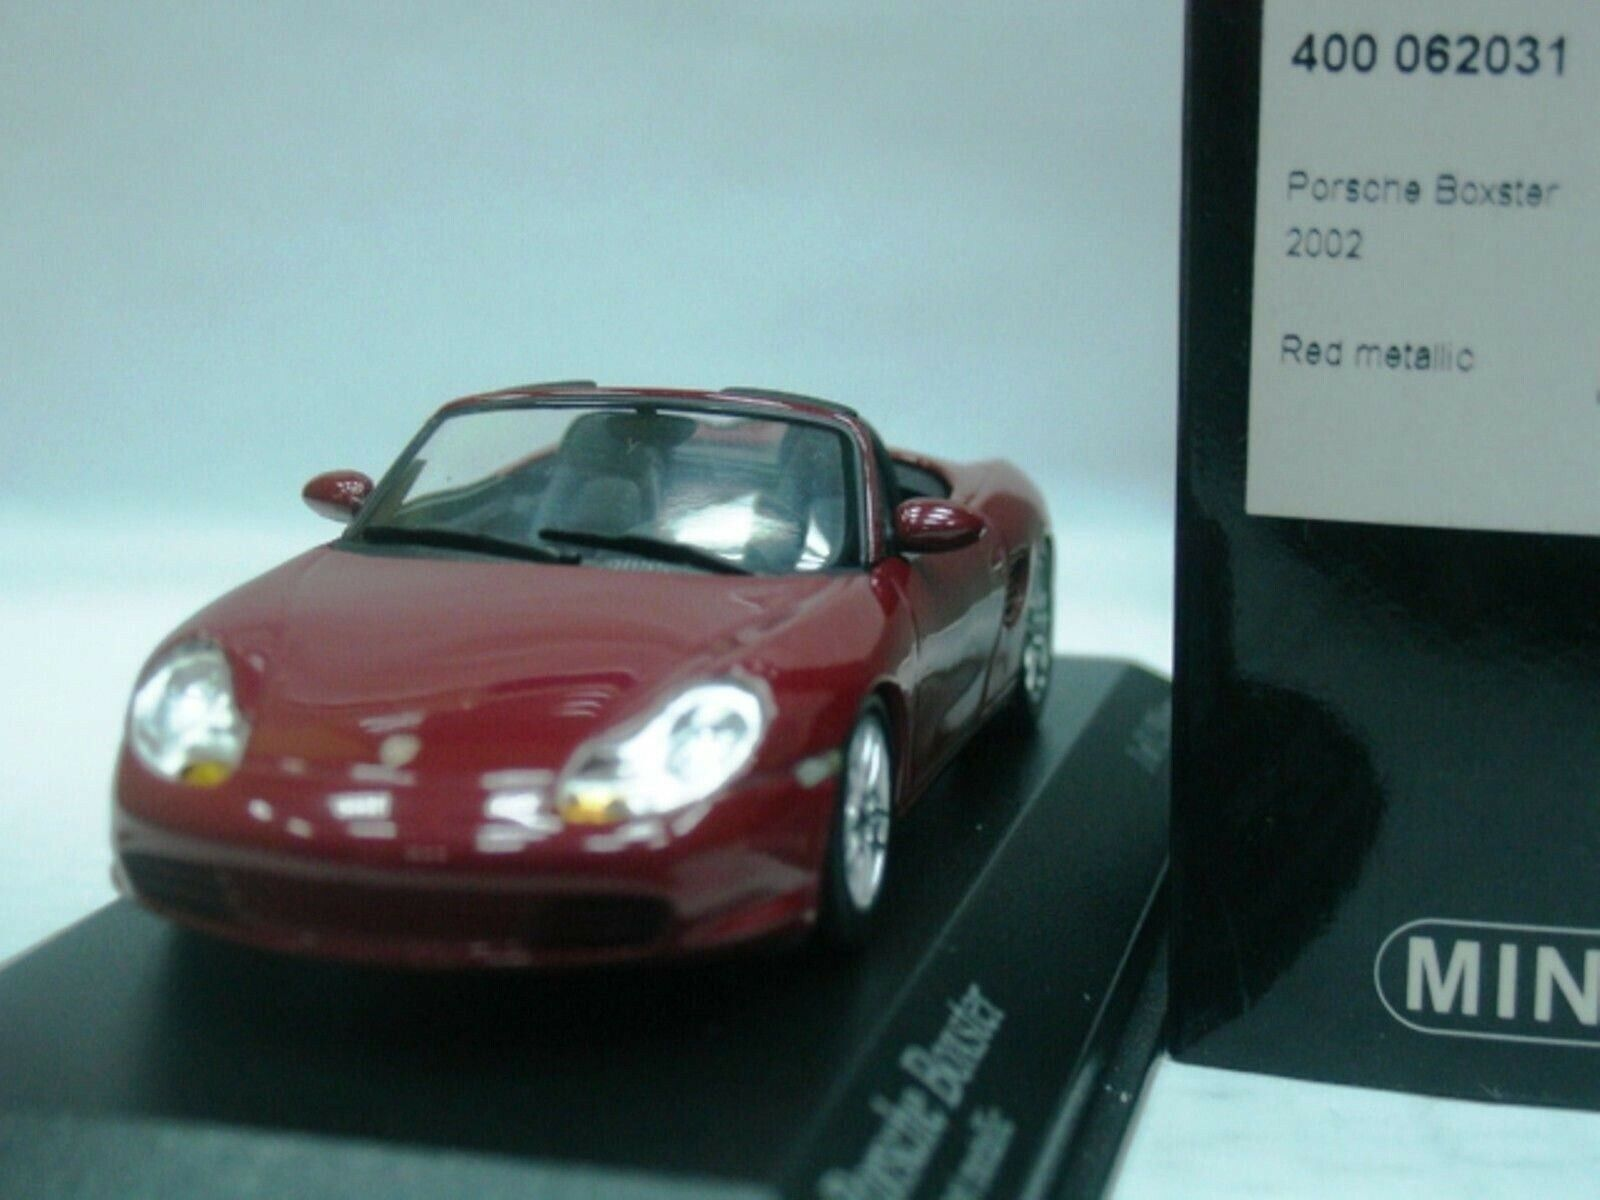 WOW EXTREMELY RARE Porsche 986 Boxster 2002 228HP Dark Red 1 43 Minichamps-Spark